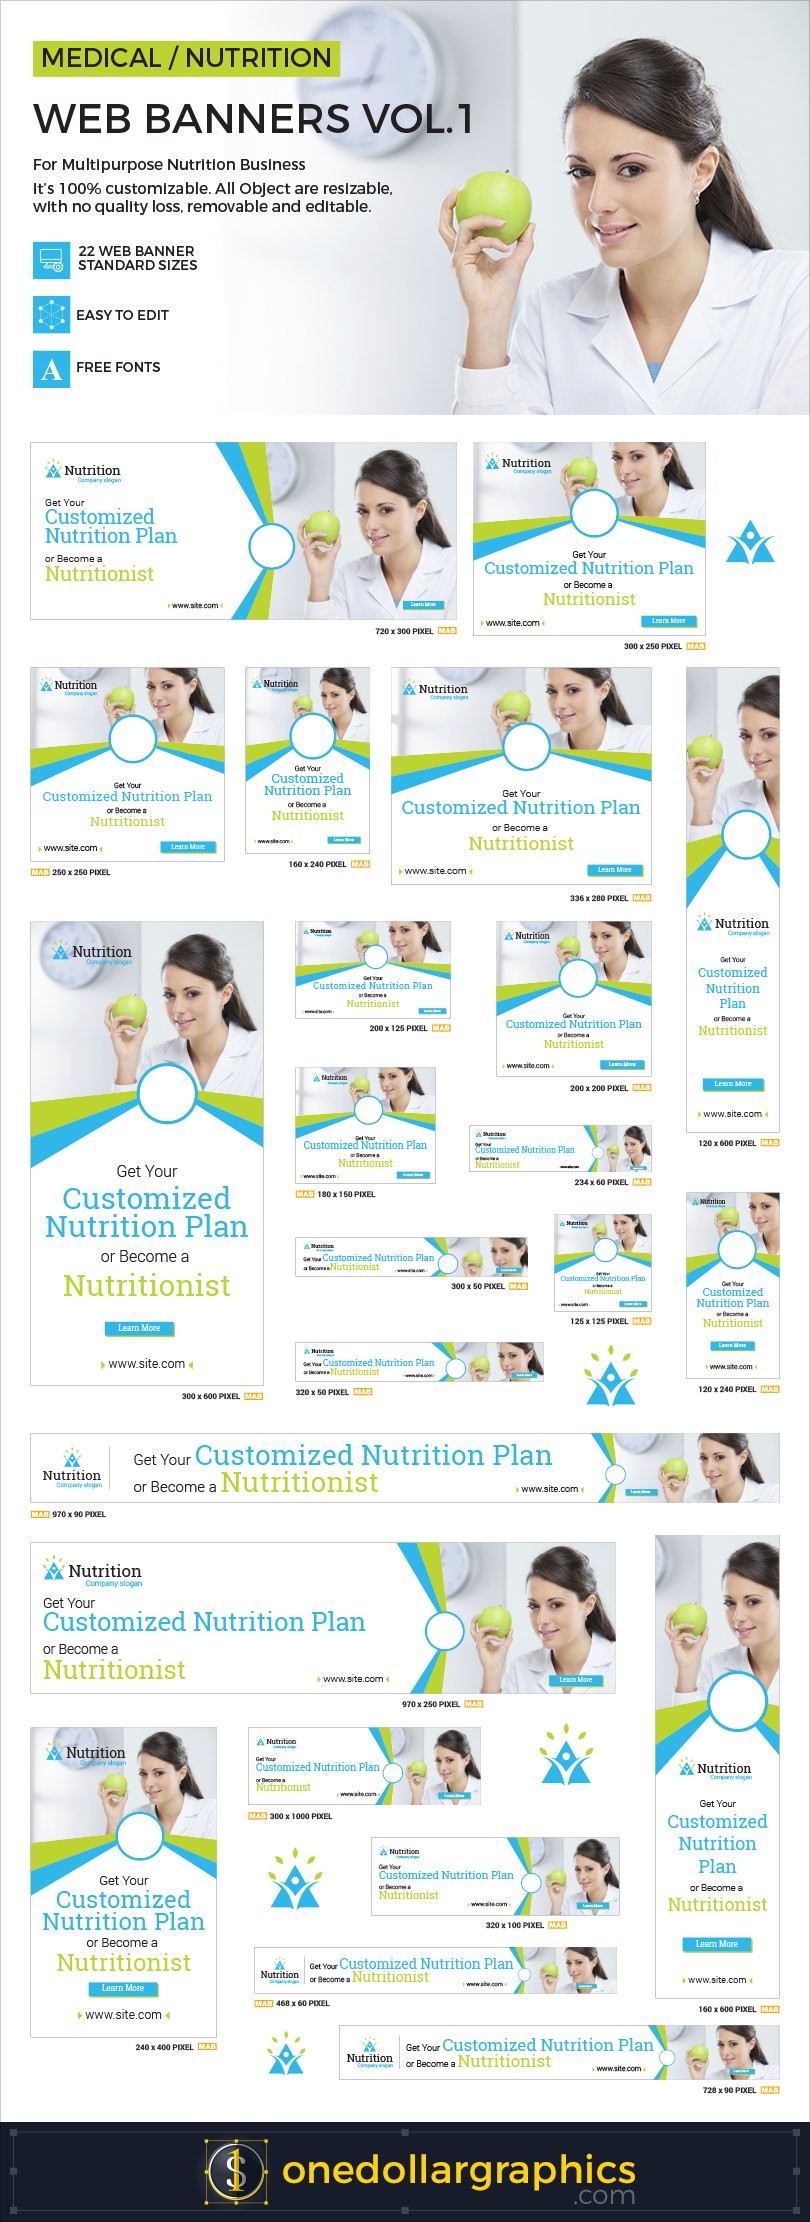 Medical-Nutrition-Web-Ad-Banners